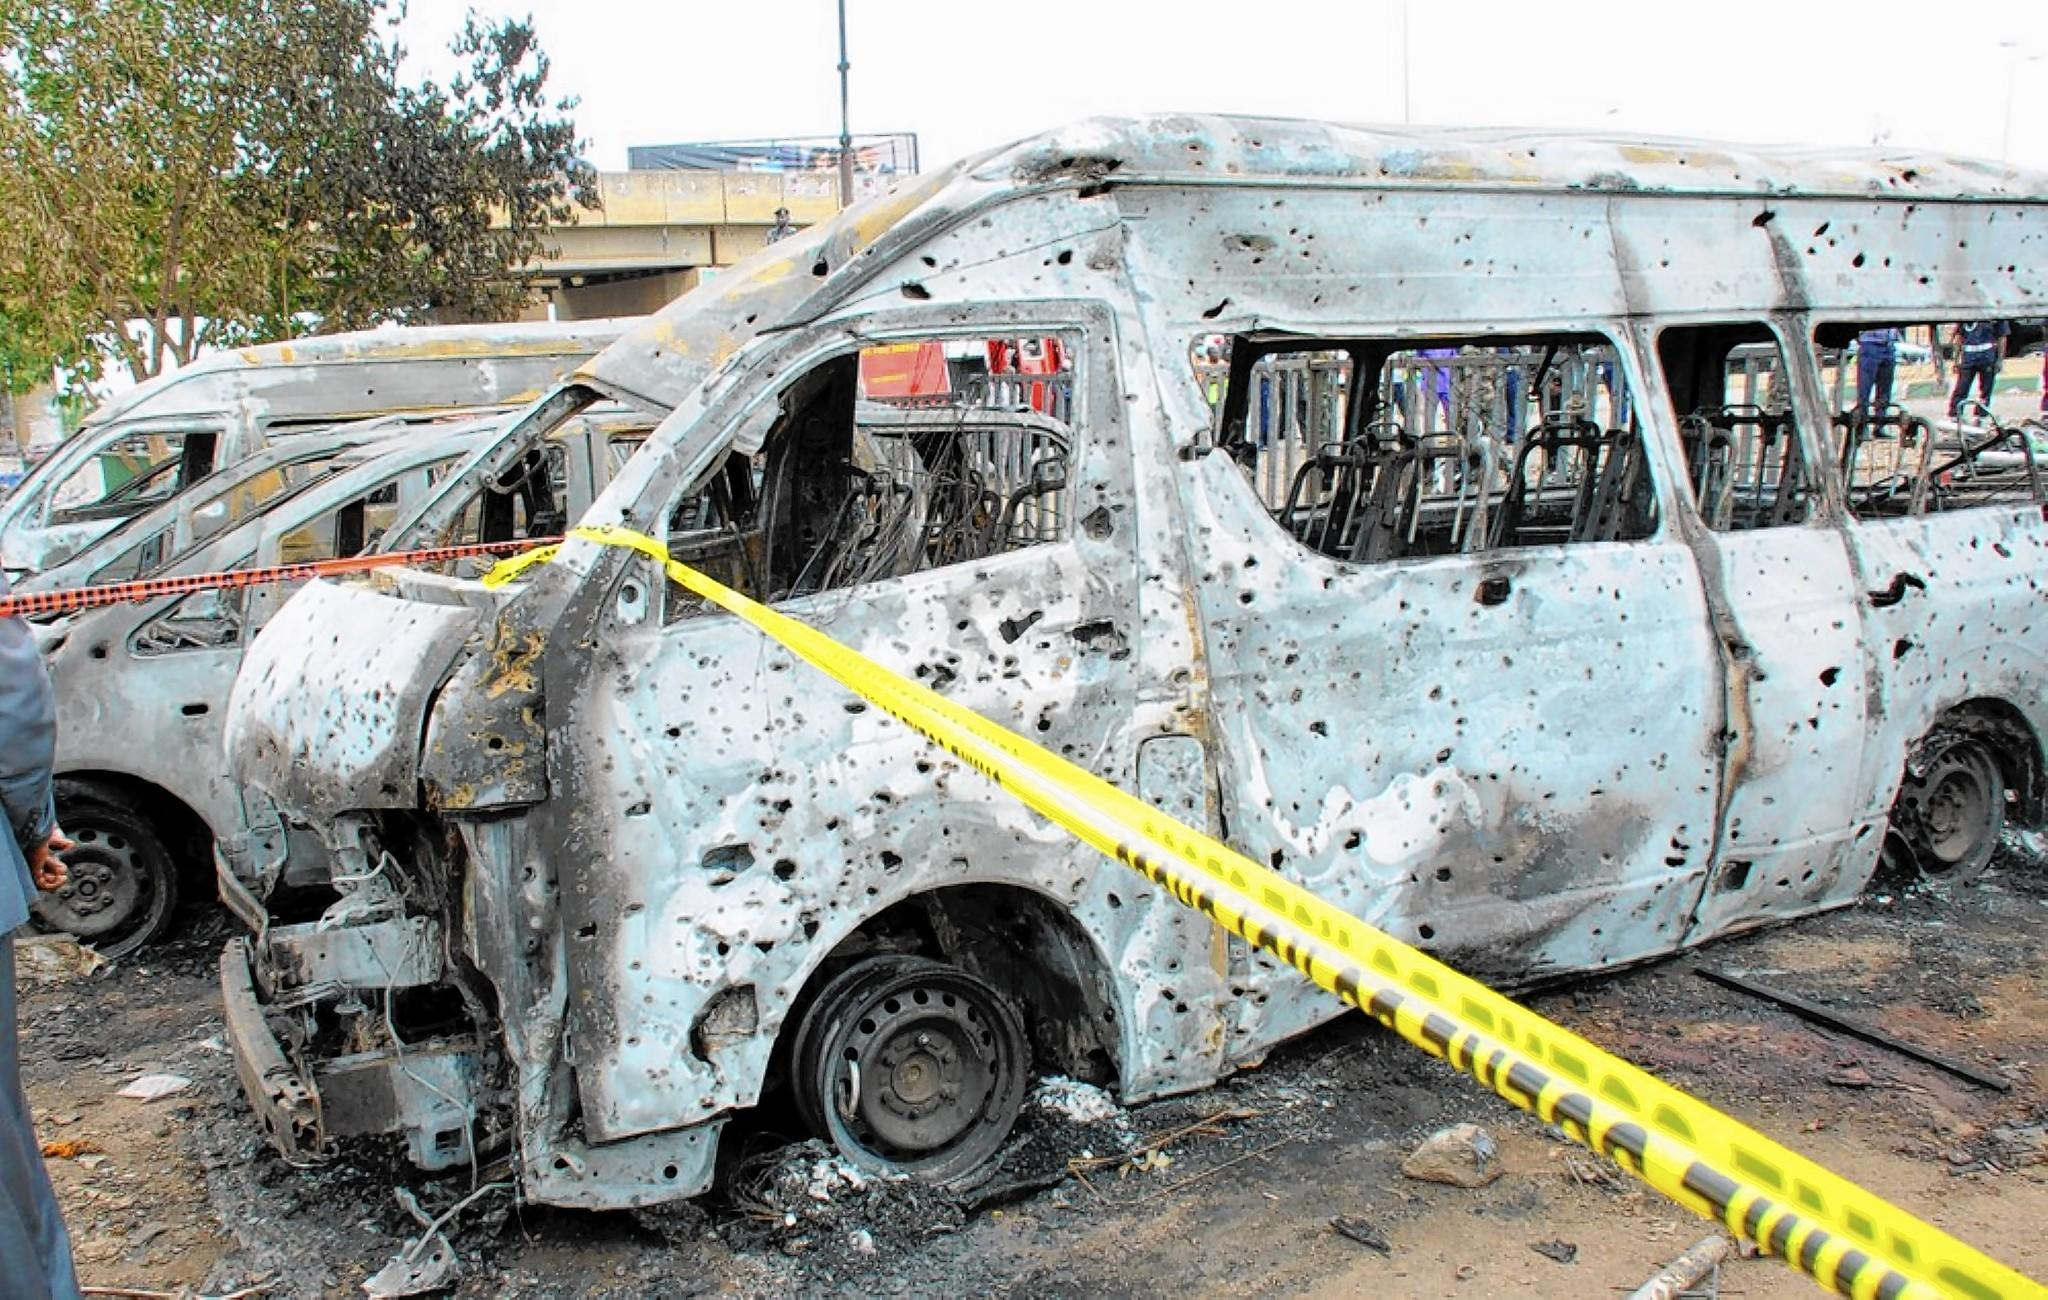 Burned vehicles sit at a bus station in Abuja, Nigeria, that was attacked April 14, apparently by the militant group Boko Haram. The suicide bombing killed 71 civilians.